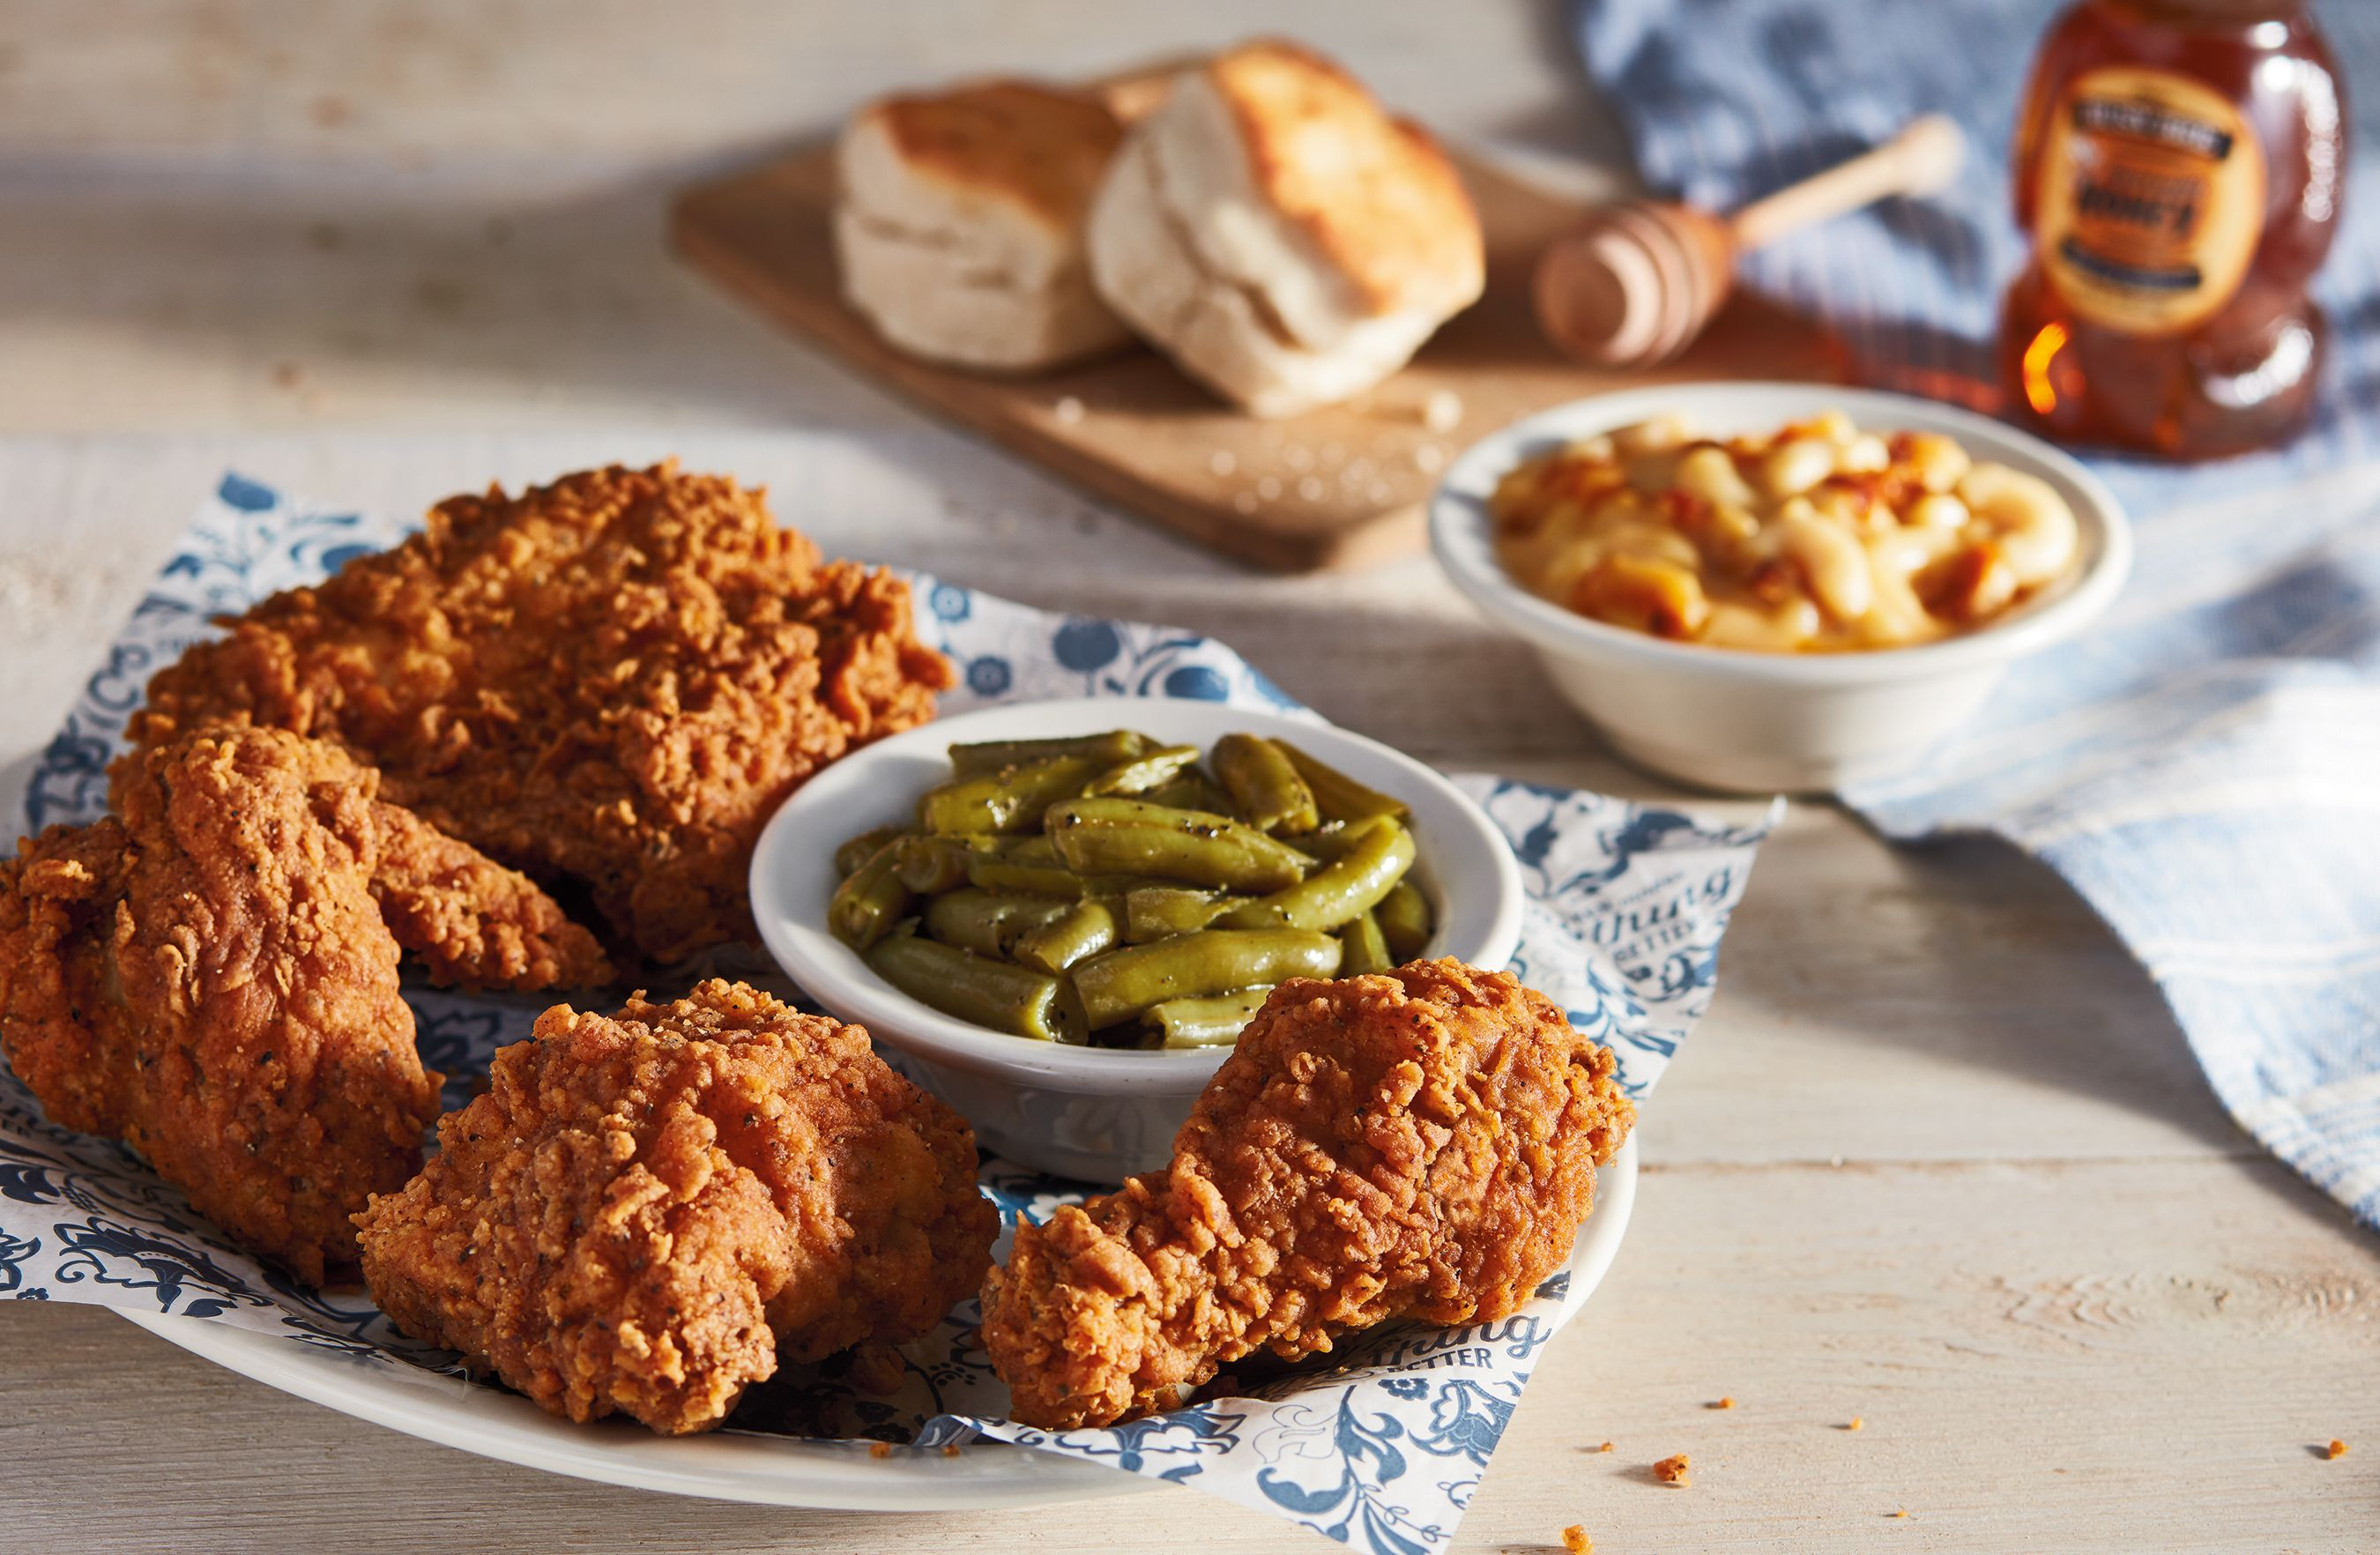 Cracker Barrel Finally Added Southern Fried Chicken To Its Menu In Honor Of Its 50th Anniversary